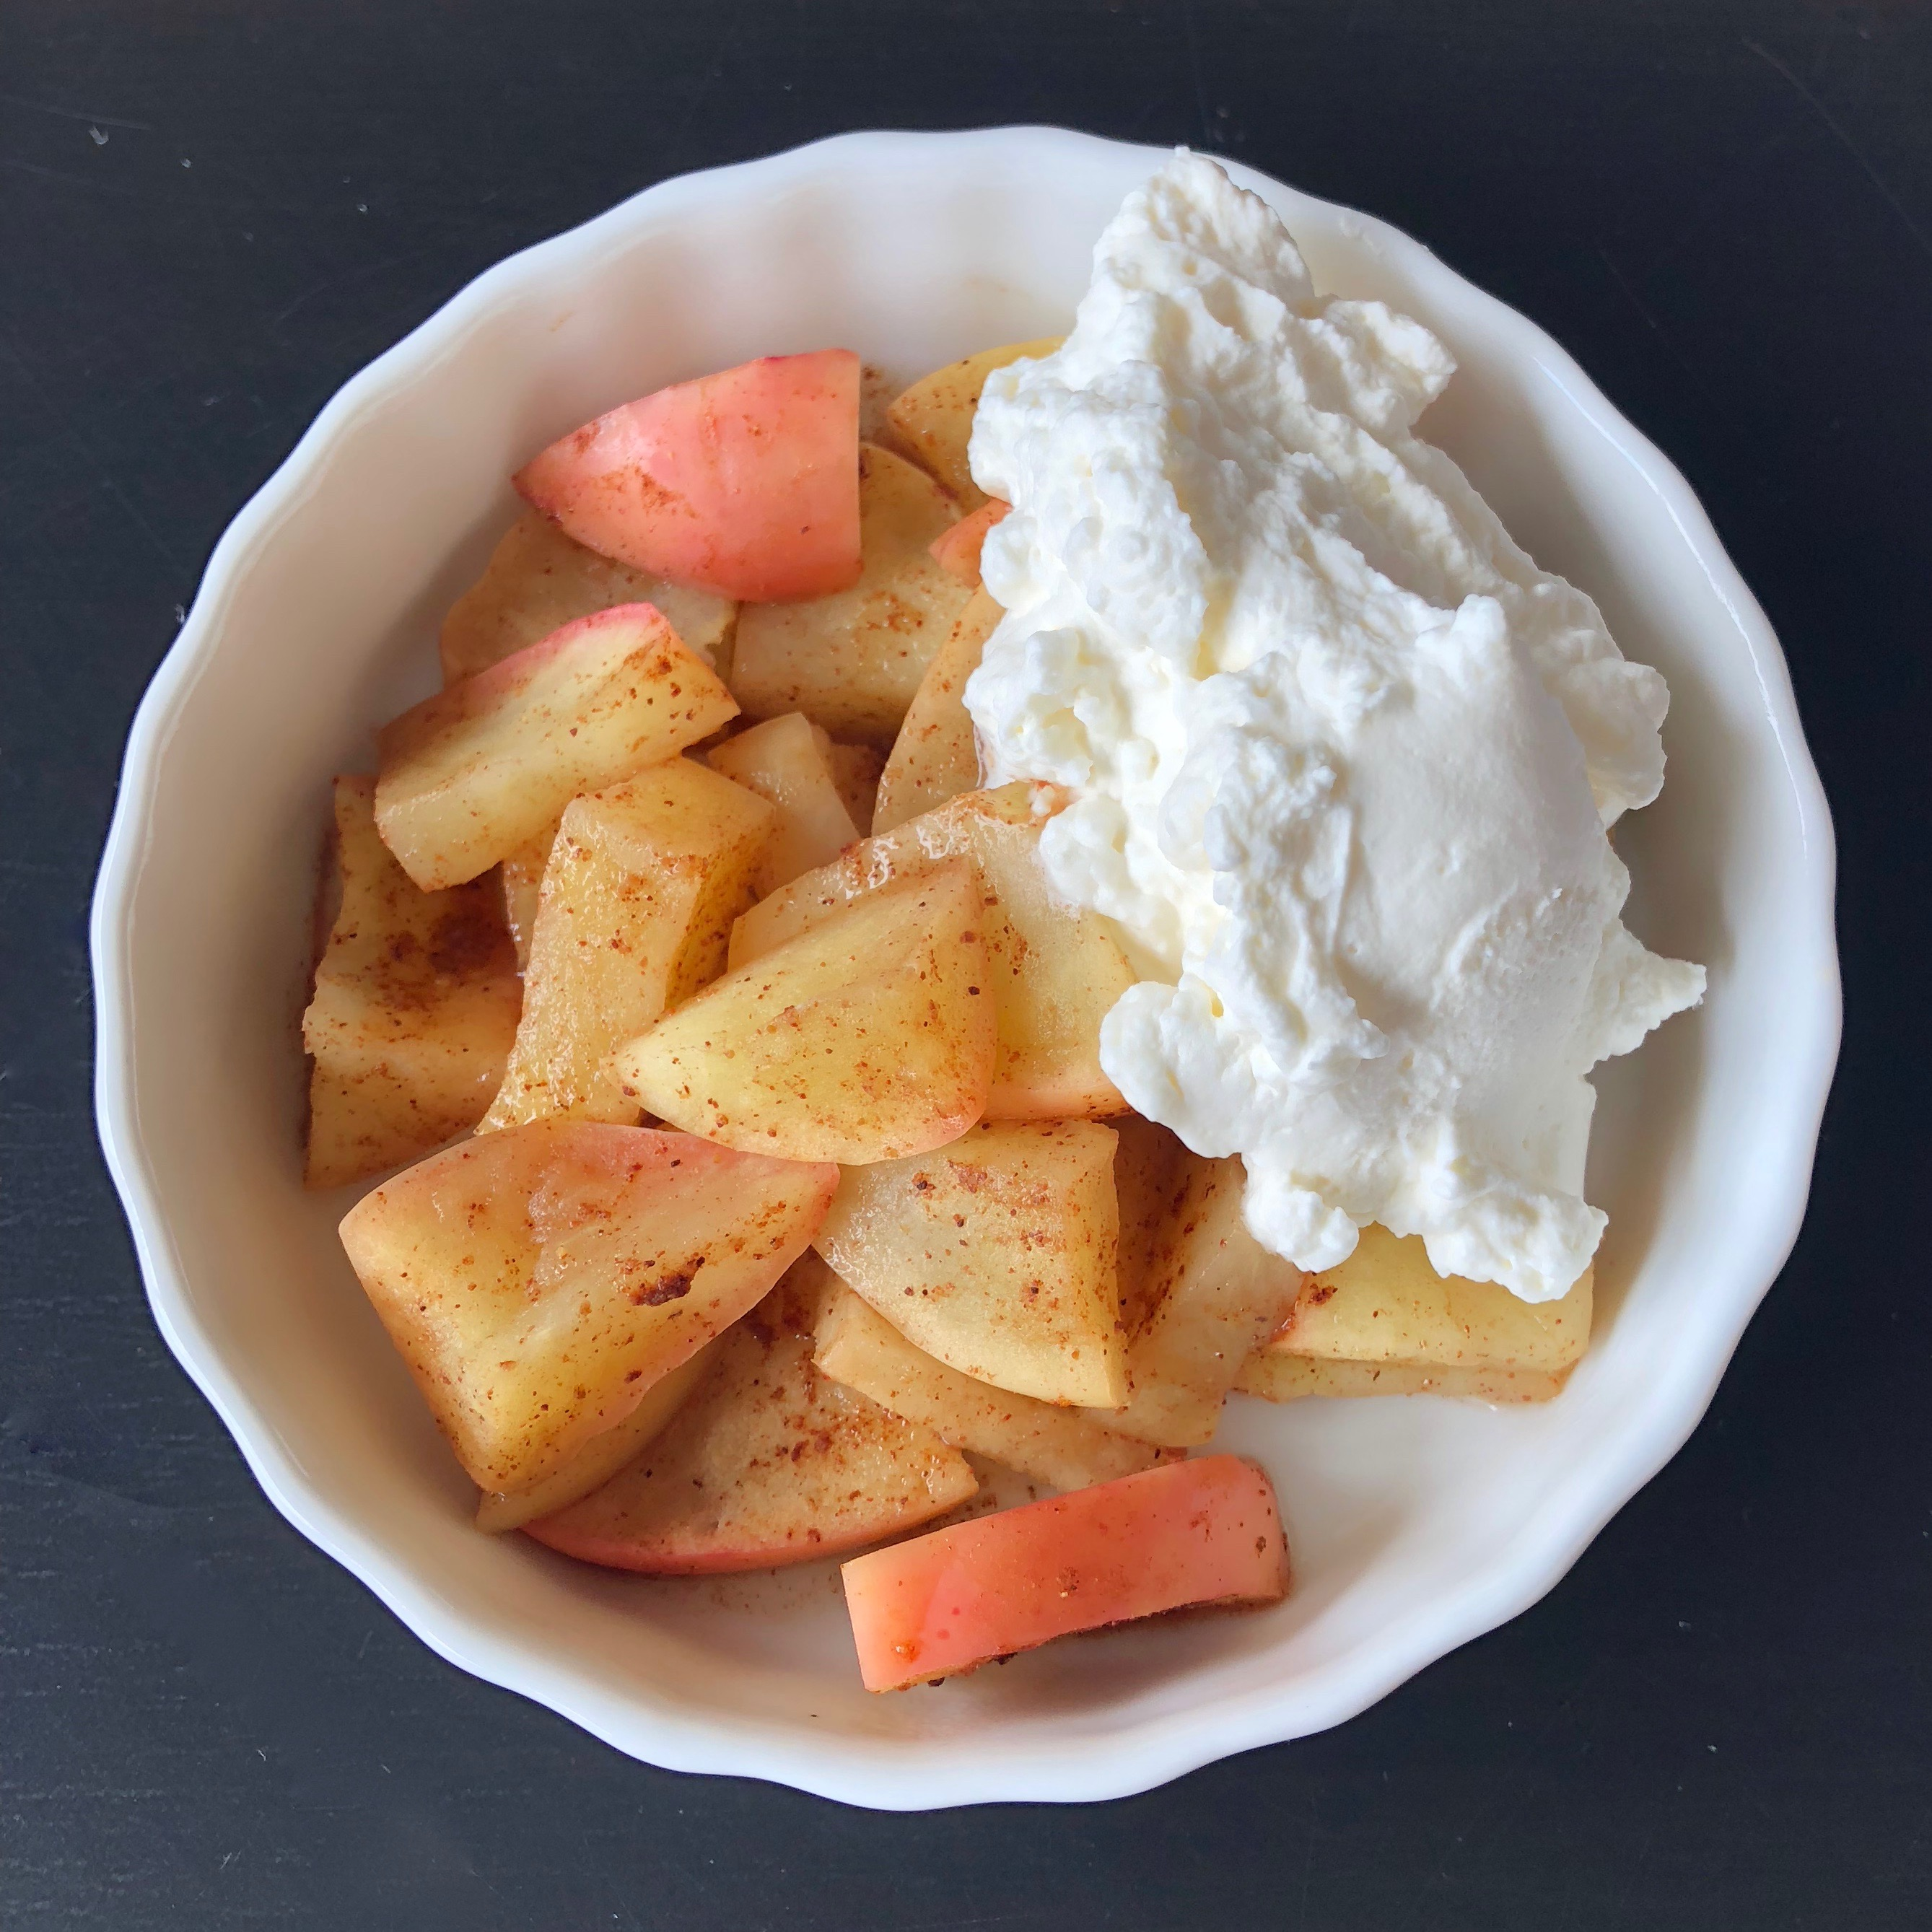 Easy Baked Apple Dessert With Maple Whipped Cream